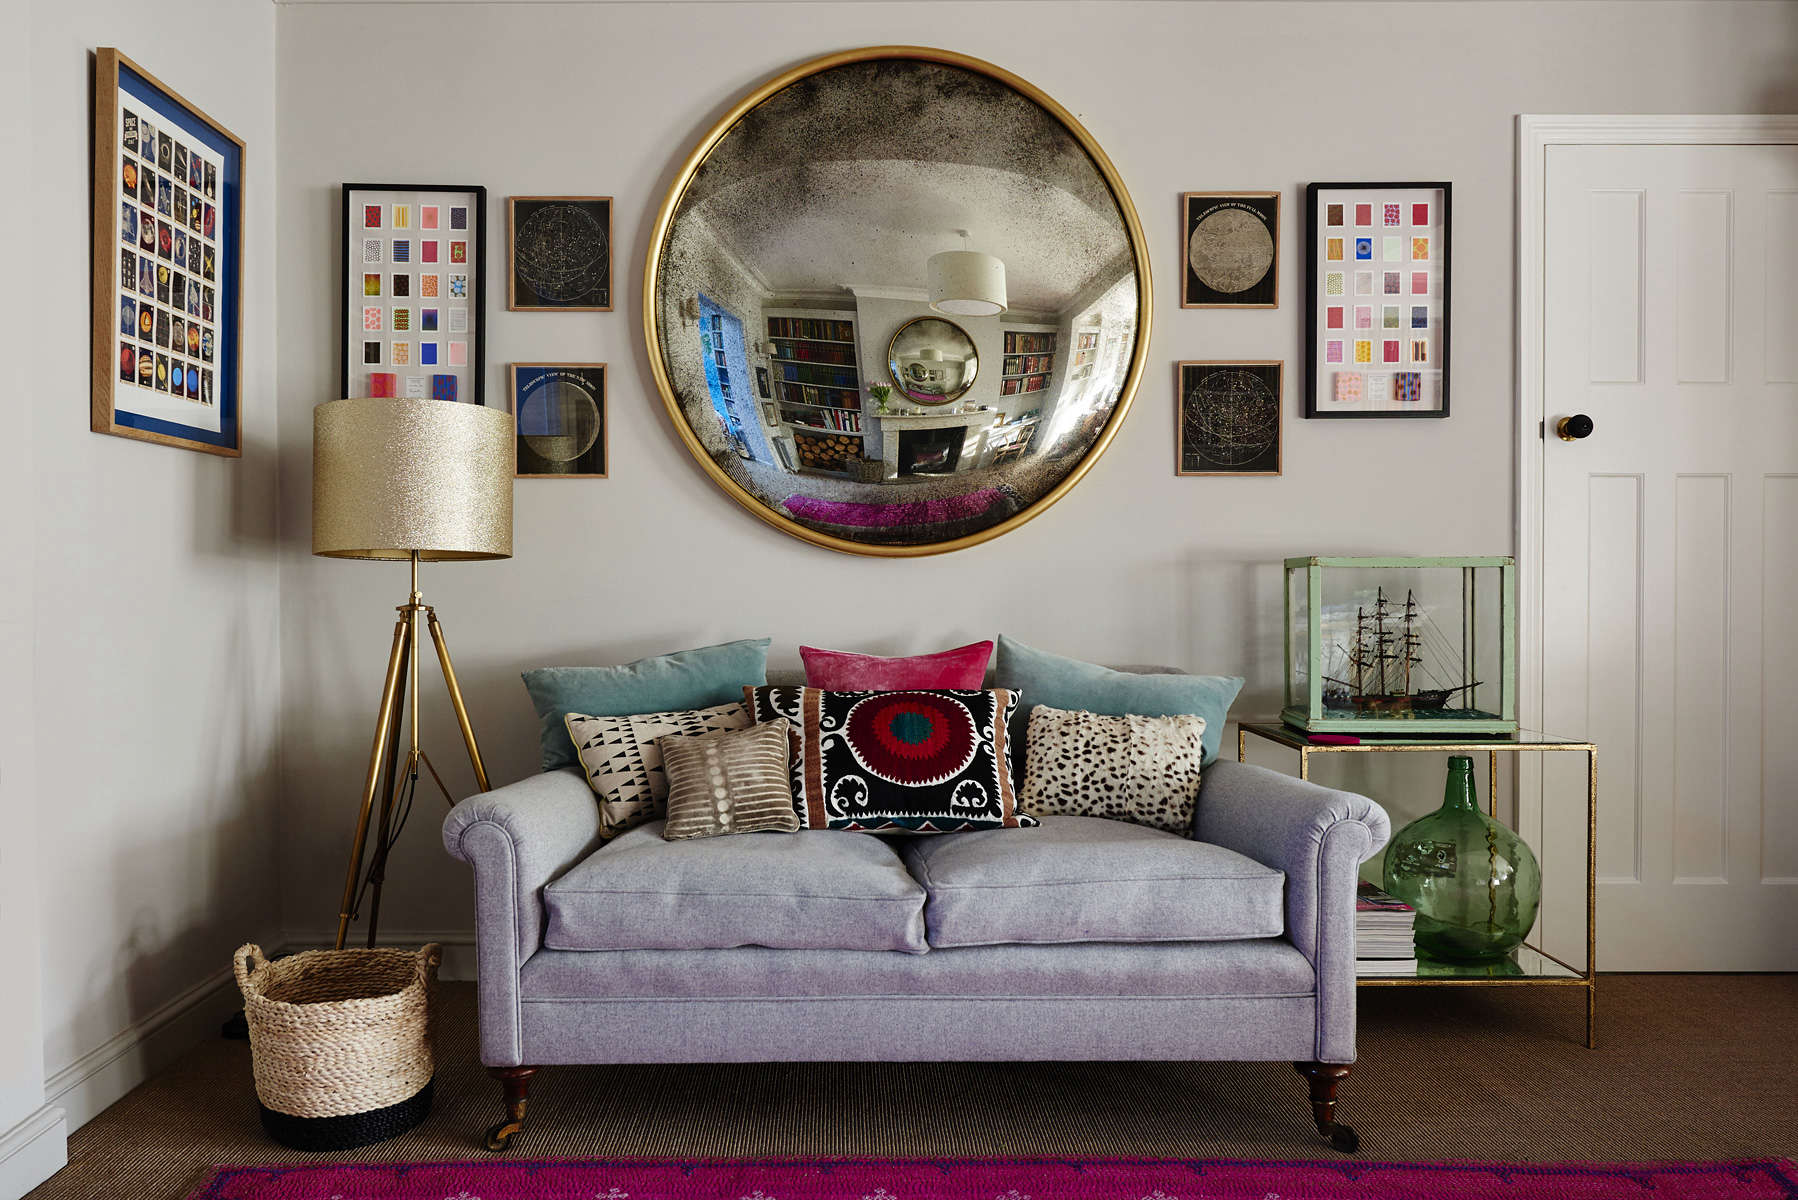 Bespoke Vintage Style Mirrors From A Small London Workshop